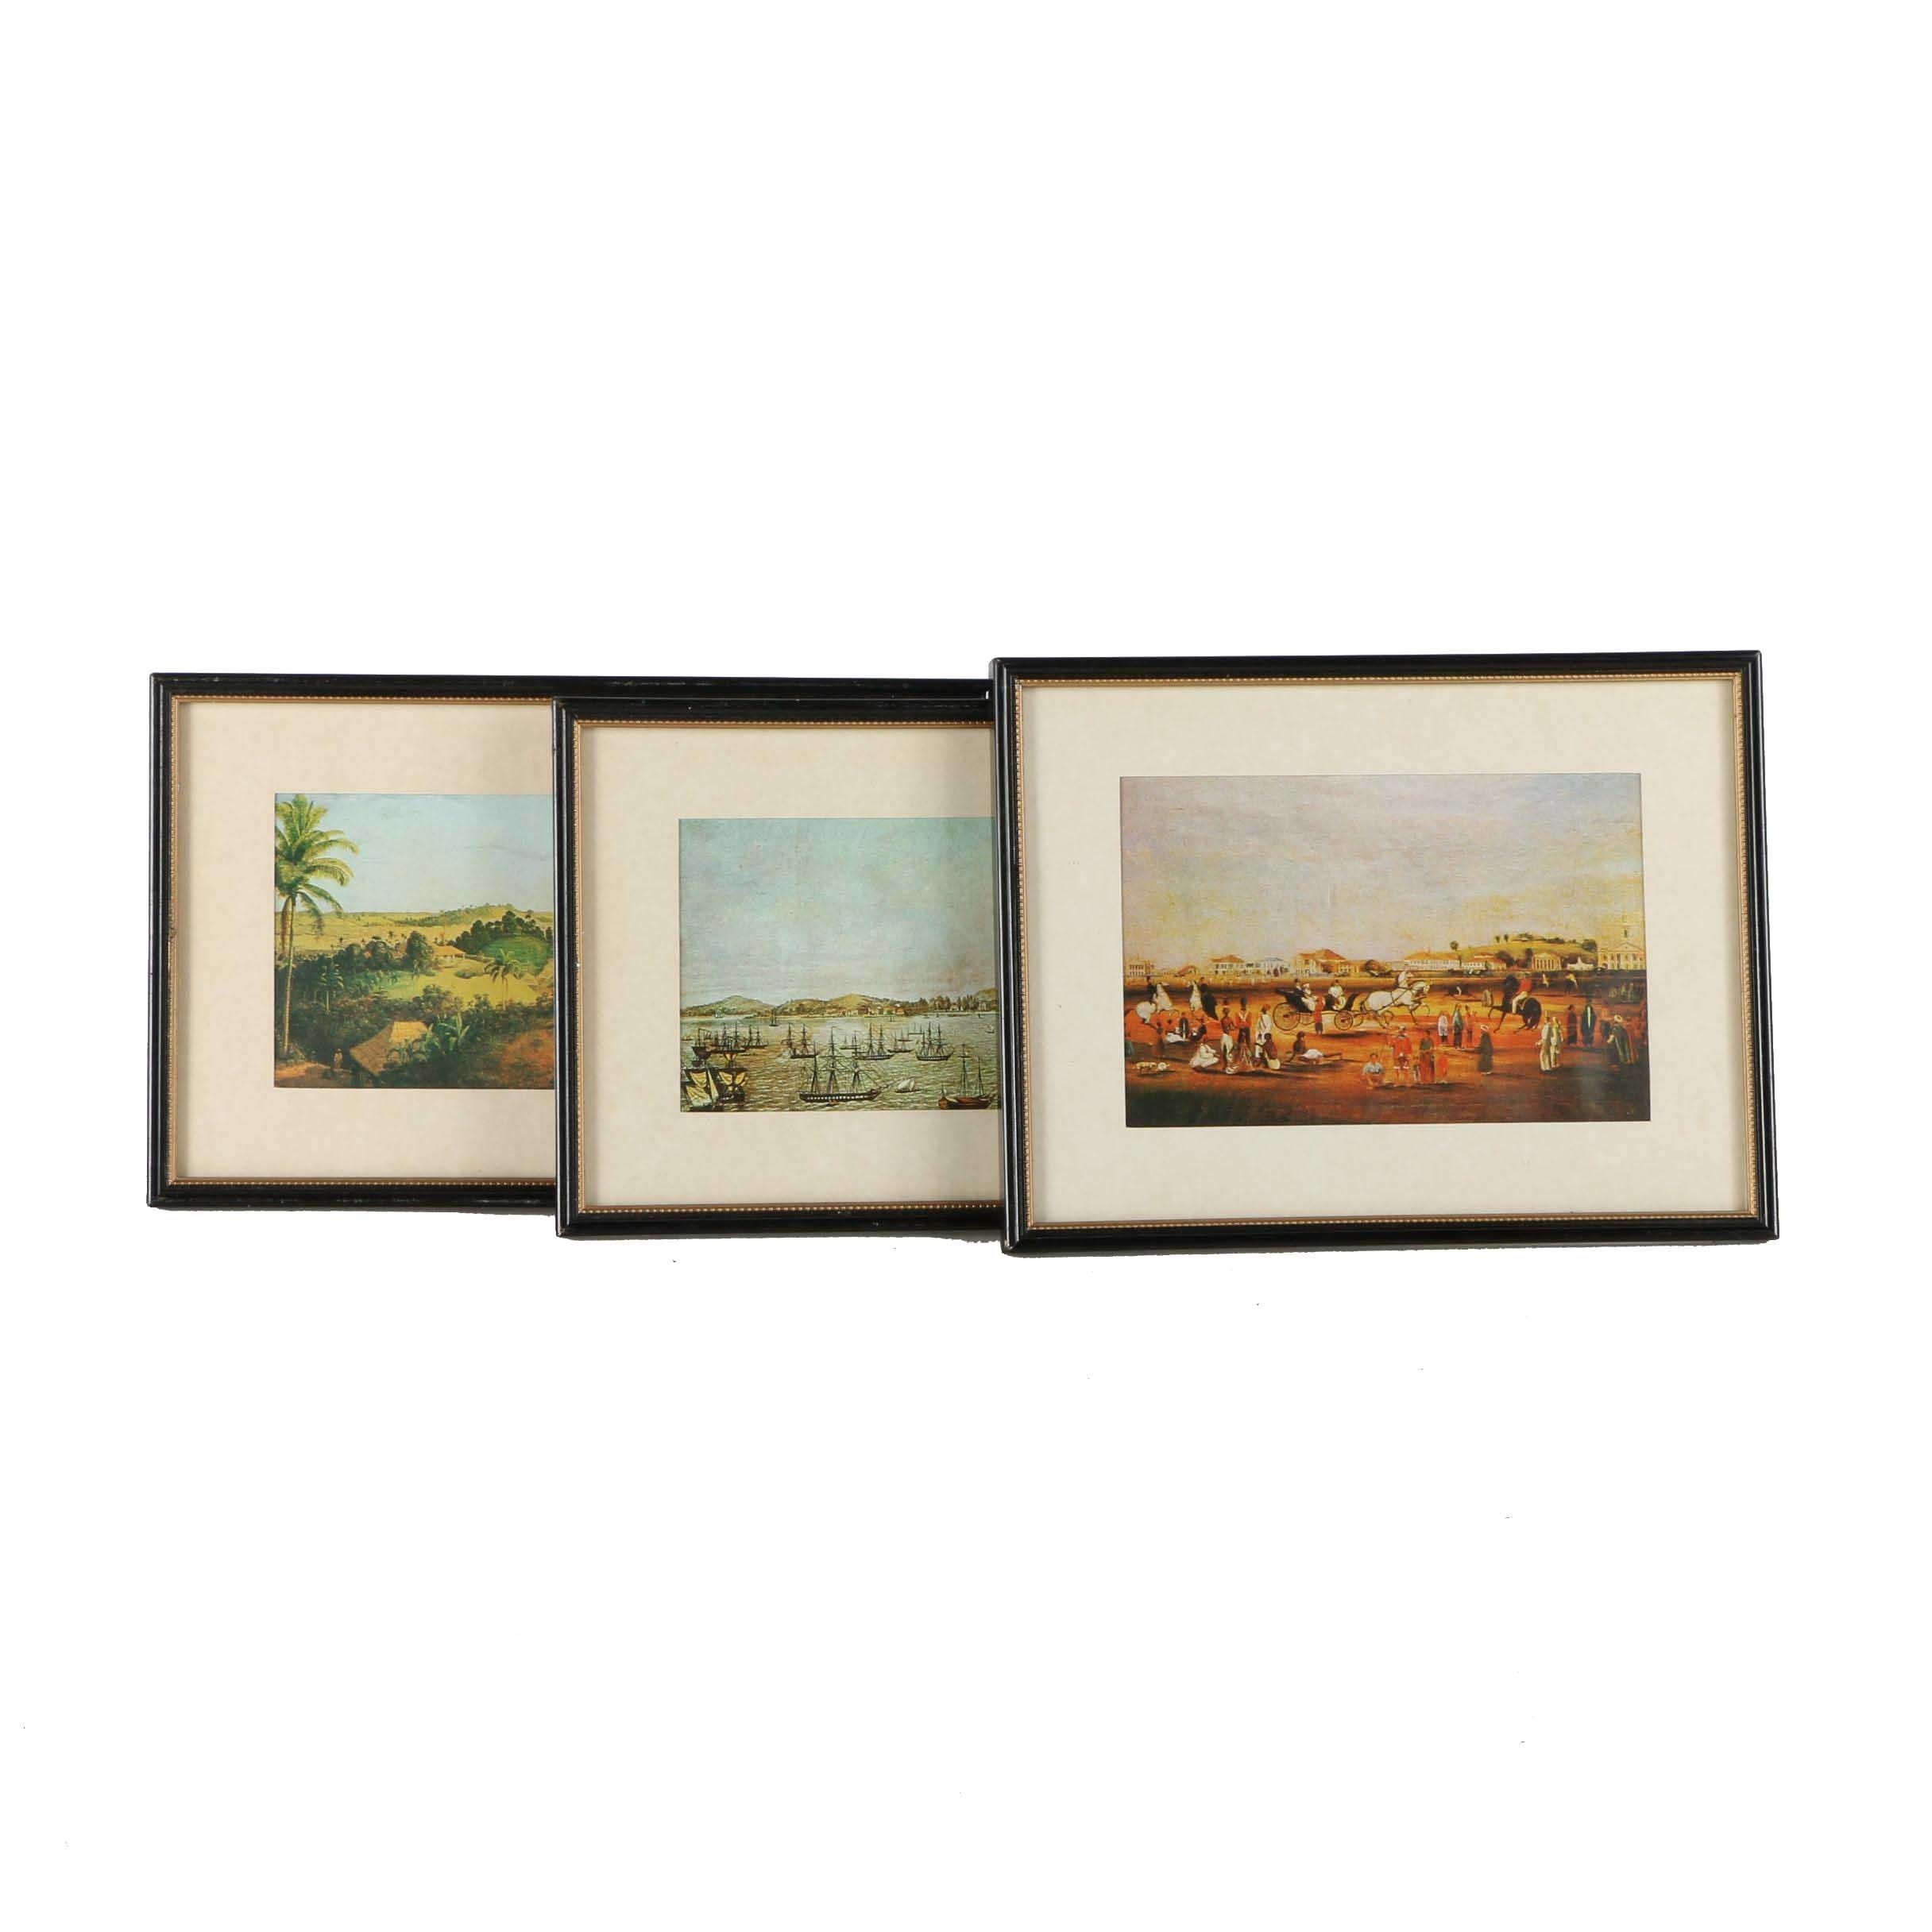 Collection of Offset Lithographs on Paper Featuring Landscapes of Singapore